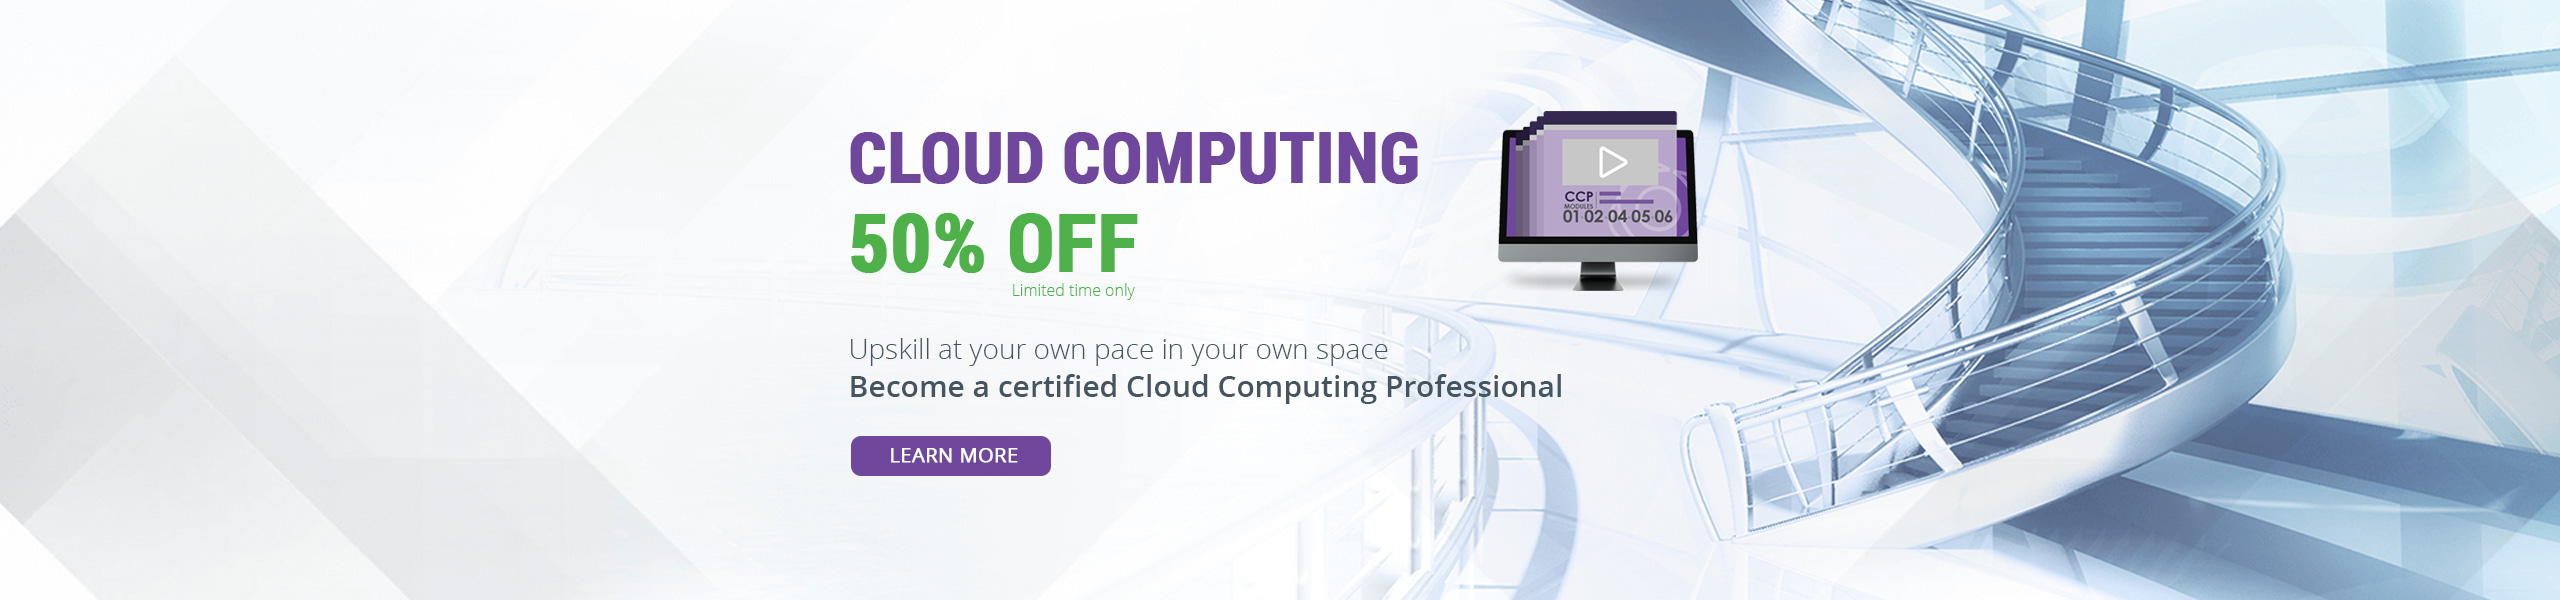 Cloud Computing eLearning Kits